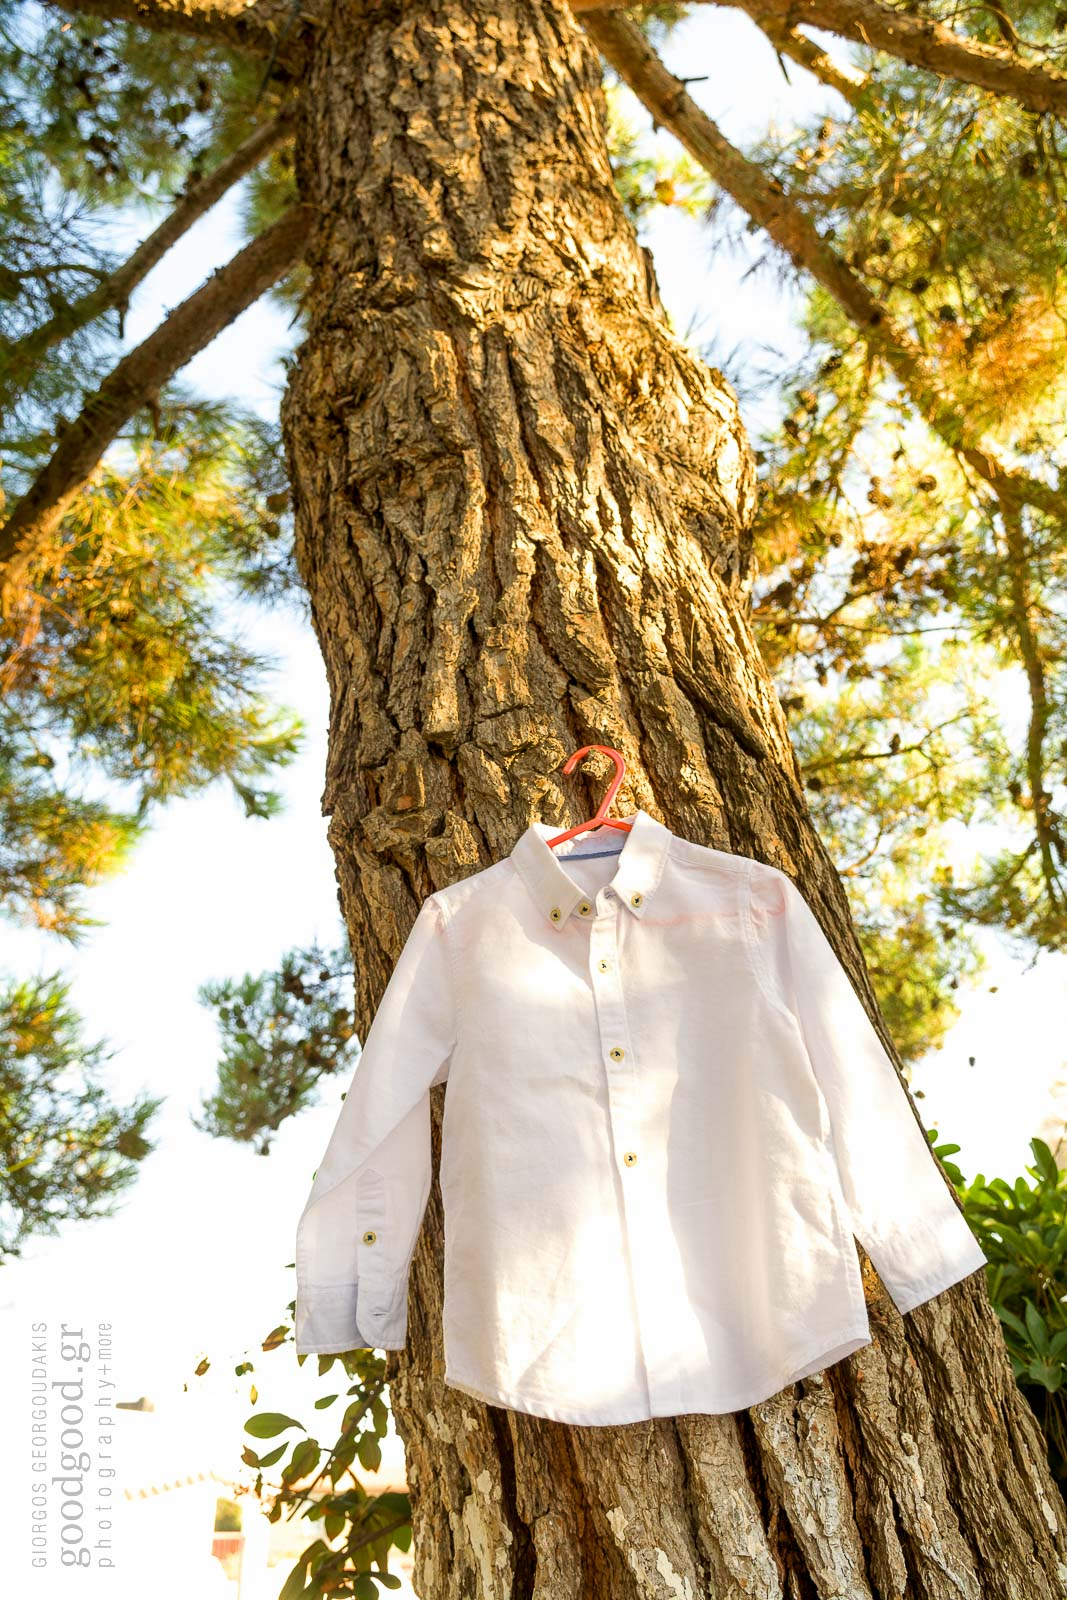 White christening shirt hung on a tree trunk